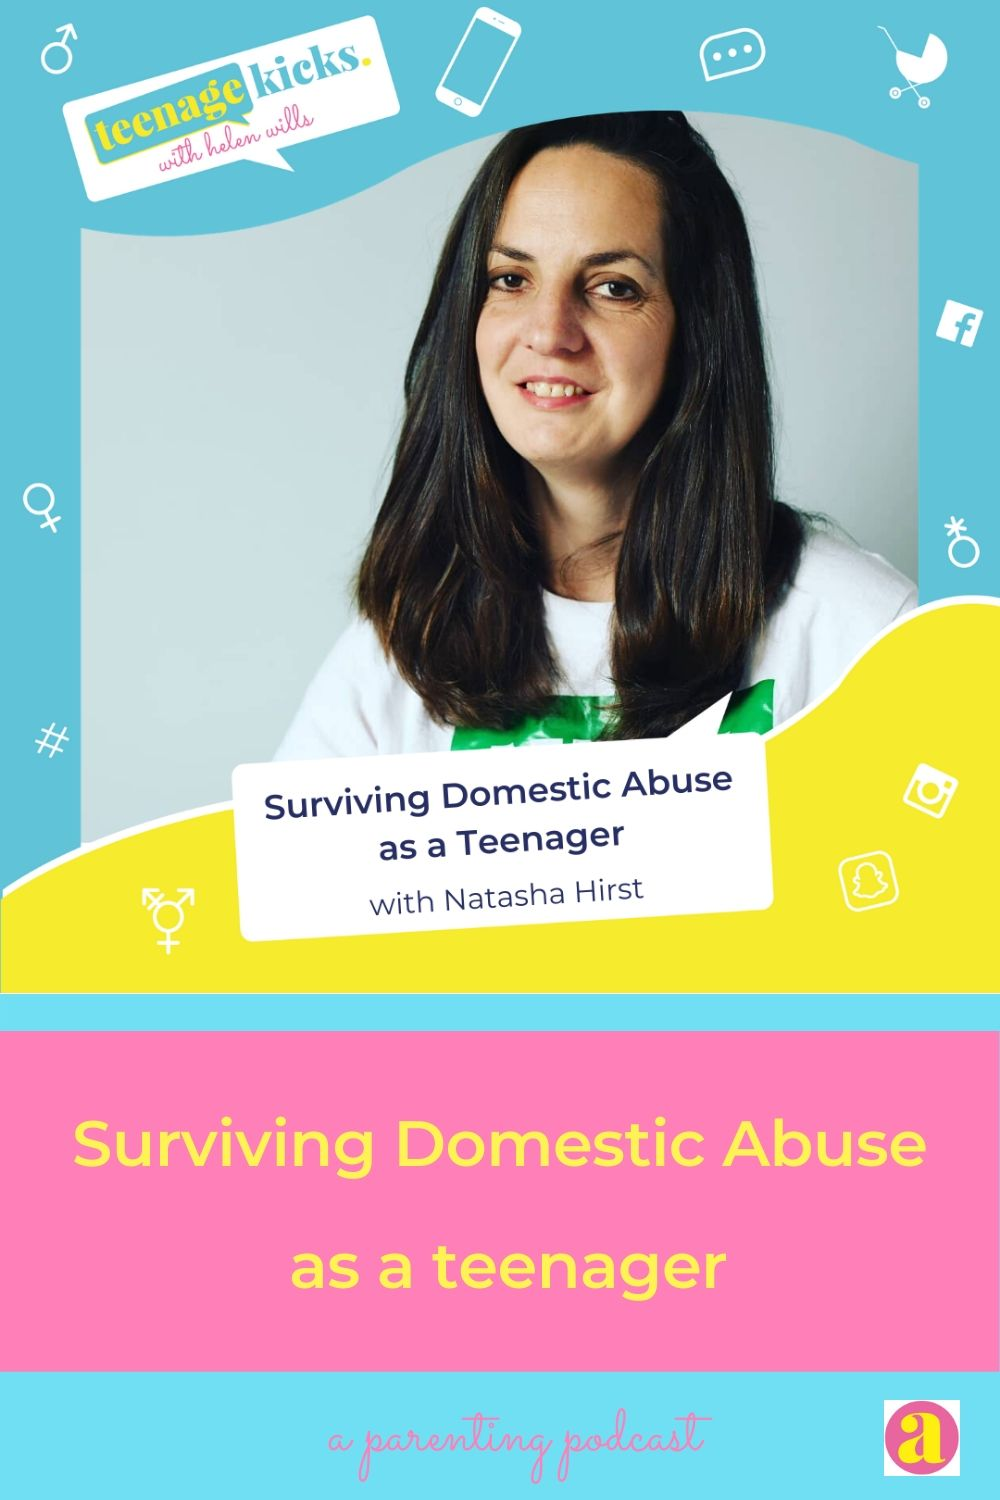 Pinterest image - how Natasha survived domestic abuse as a teenager